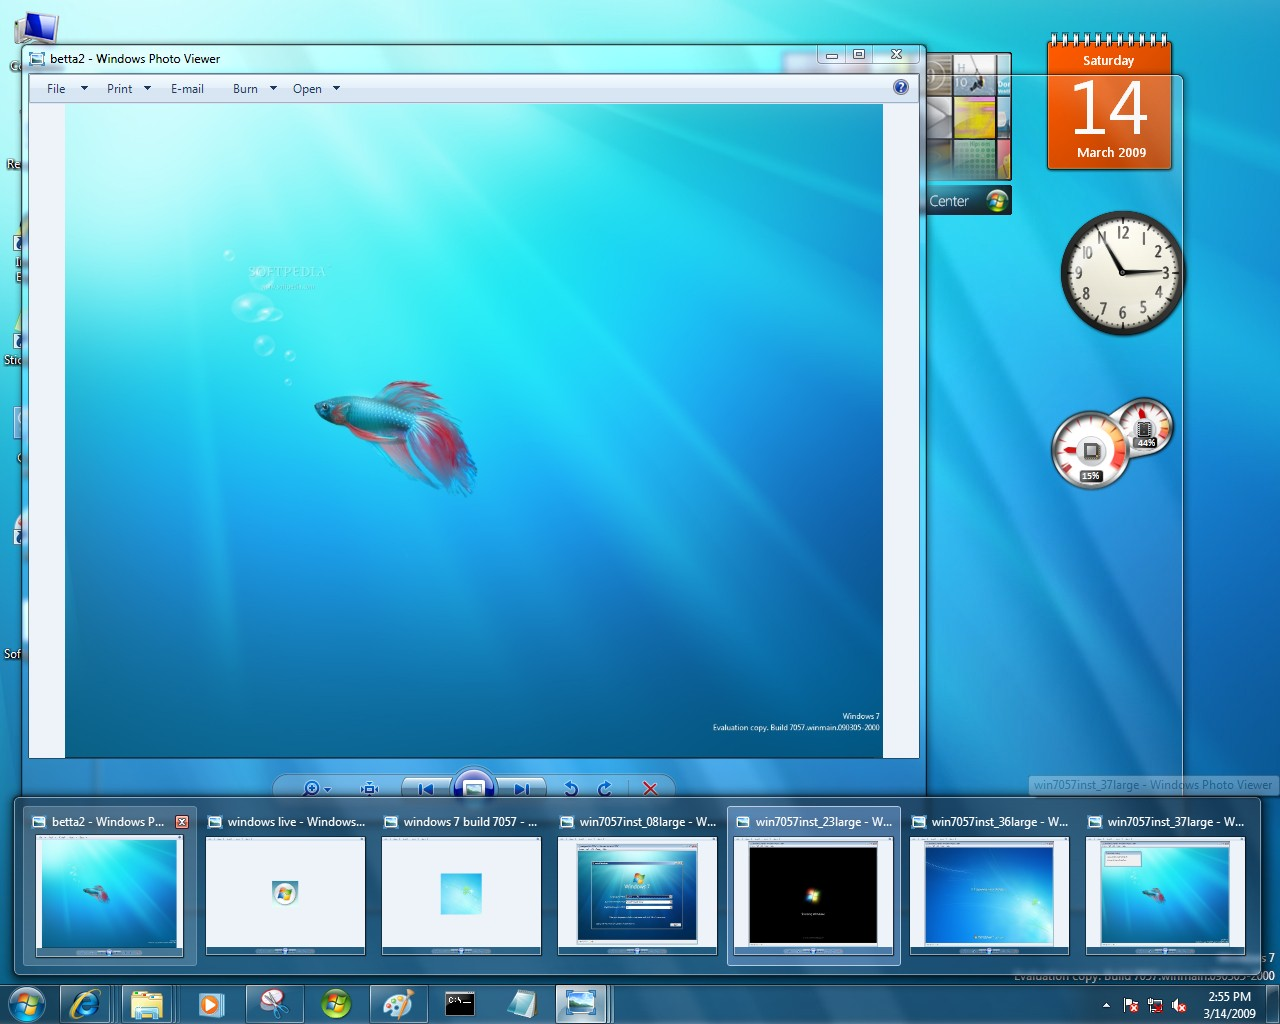 Windows 10: Restore Windows Photo Viewer in Windows 10 Window photo viewer for 7